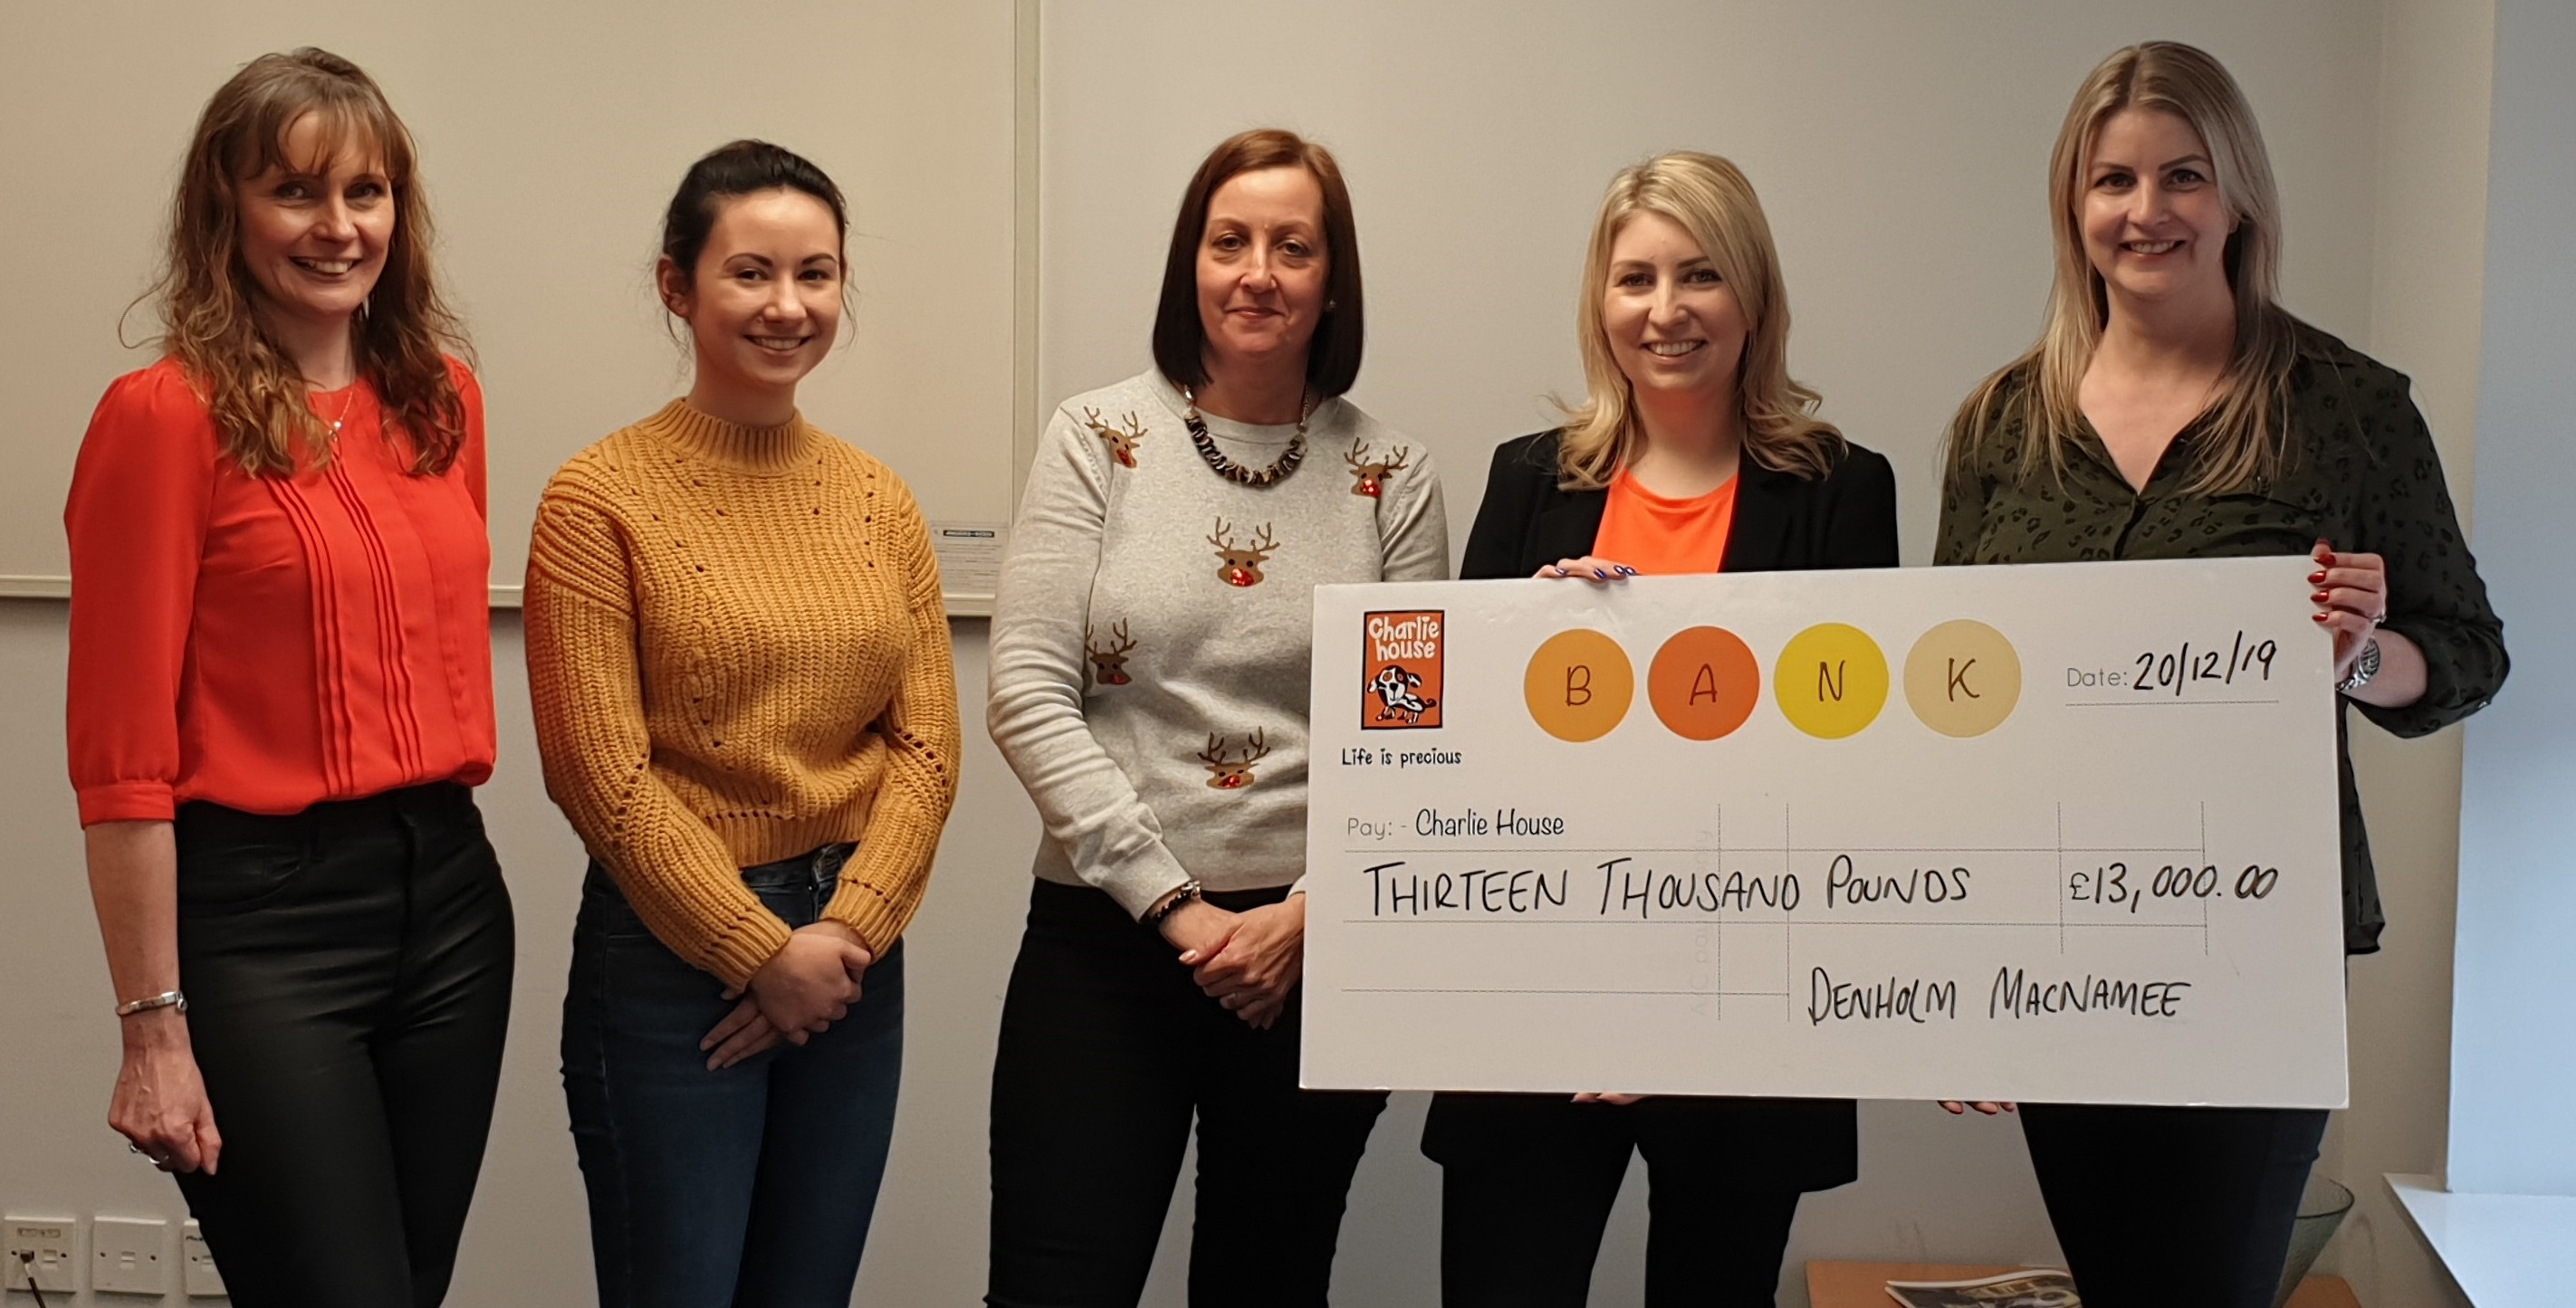 The team from Denholm MacNamee presented the cheque to Charlie House